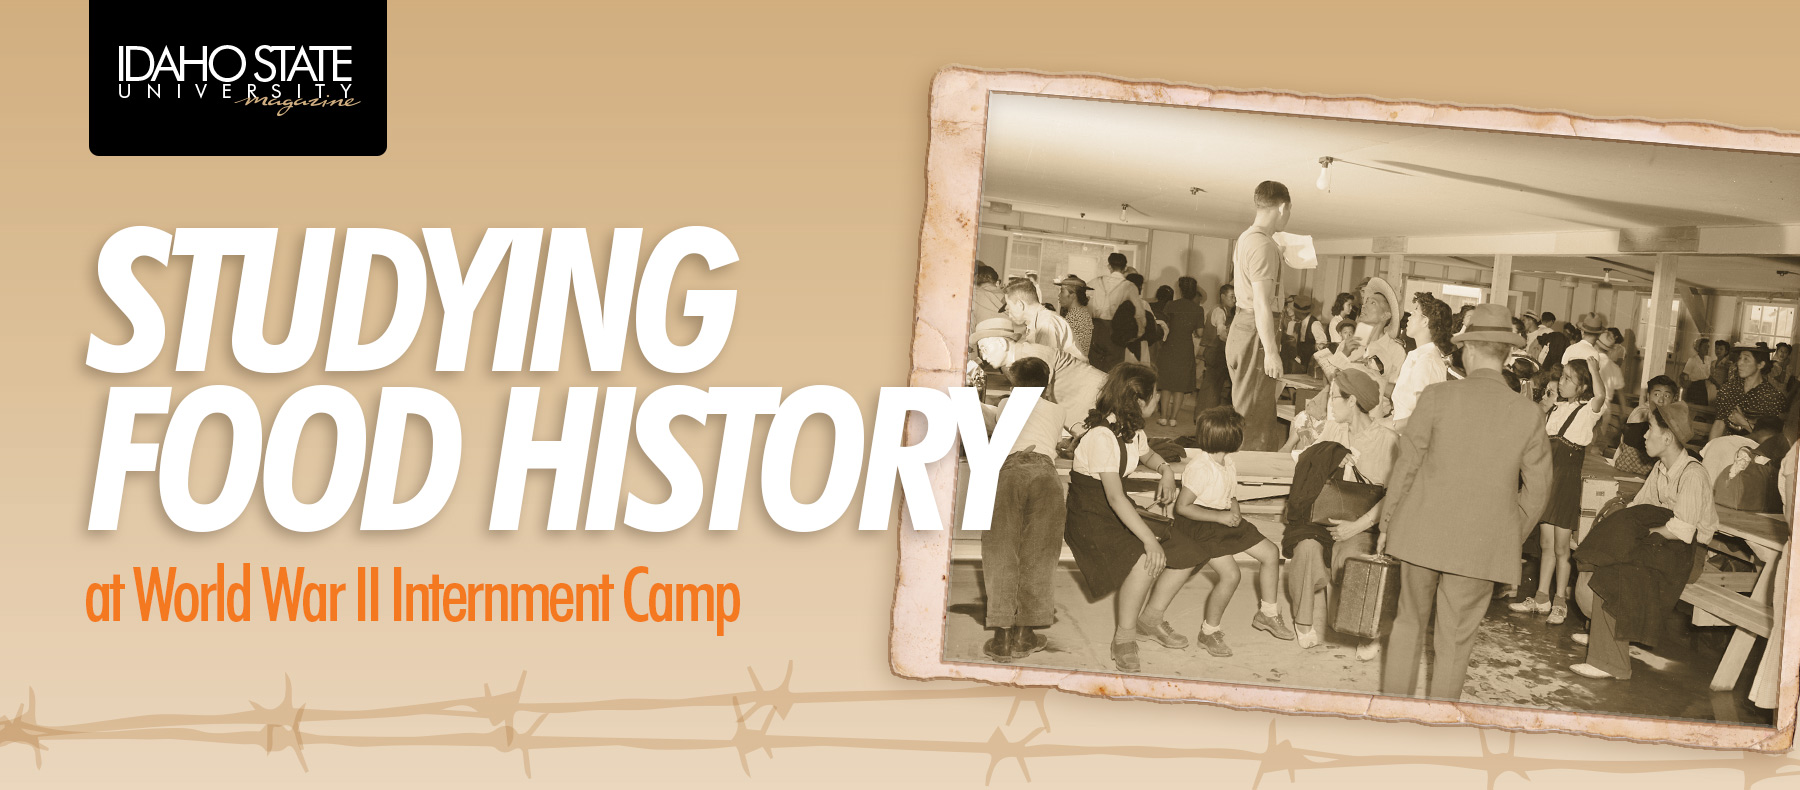 Studying food history at World War II internment camp